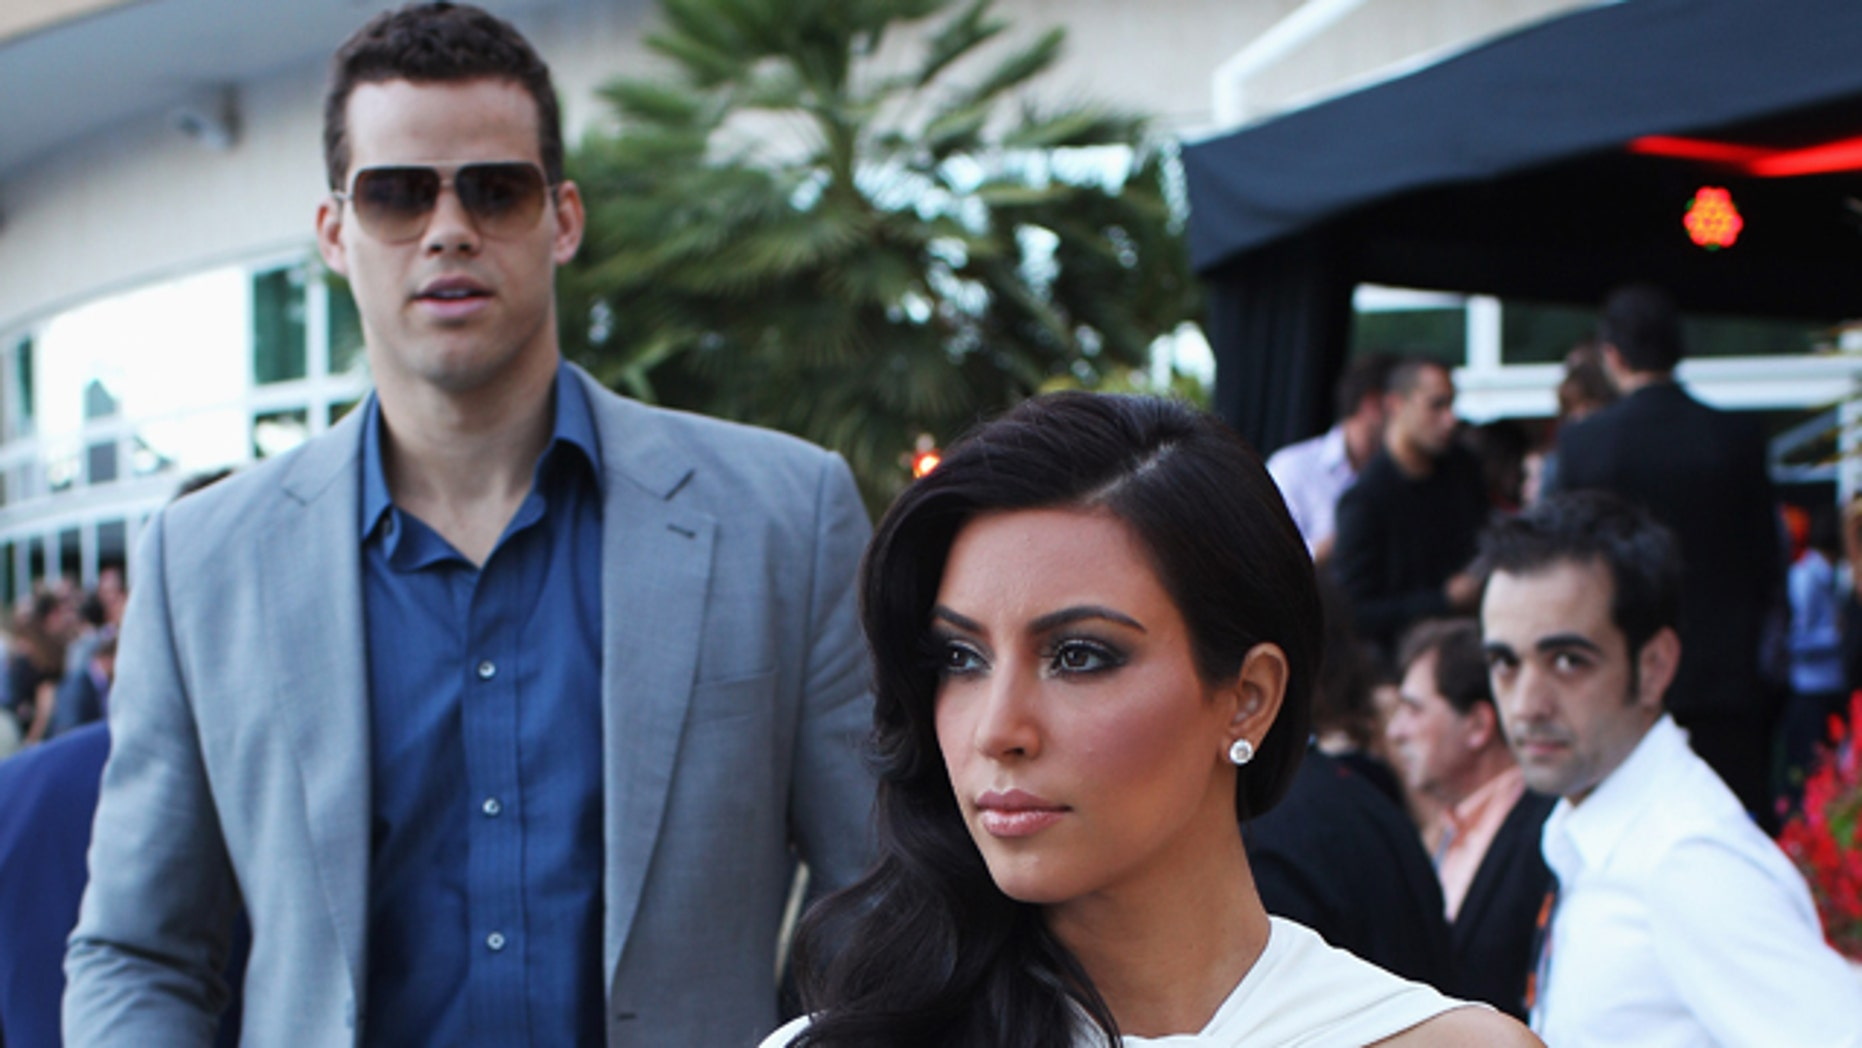 May 27, 2011: Kim Kardashian and Kris Humphries attend the Amber Fashion Show held at the Meridien Beach Plaza in Monte Carlo, Monaco.